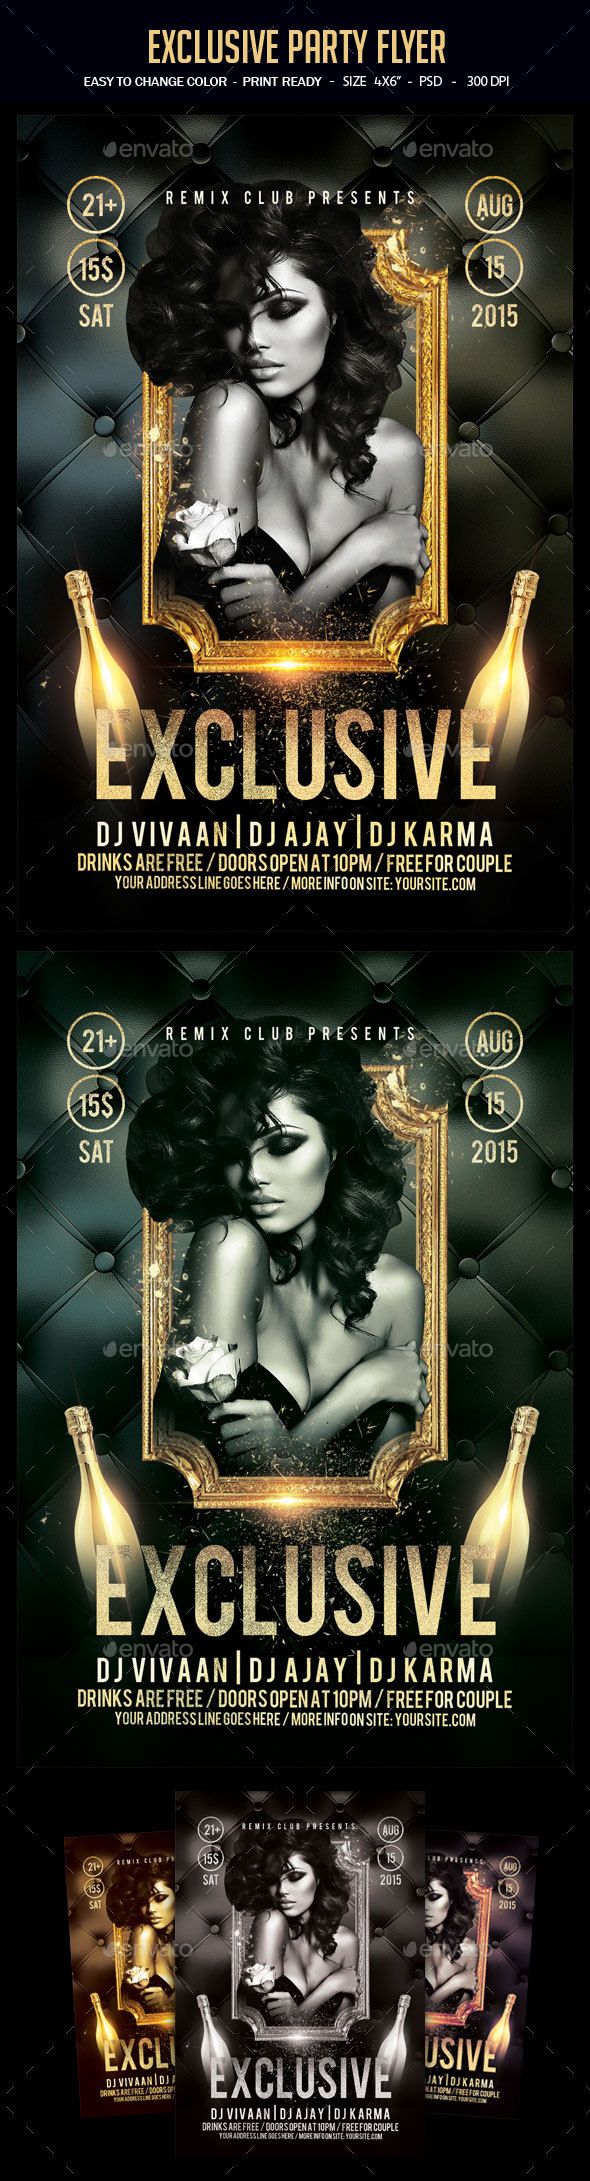 Exclusive Party Flyer - Clubs & Parties Events